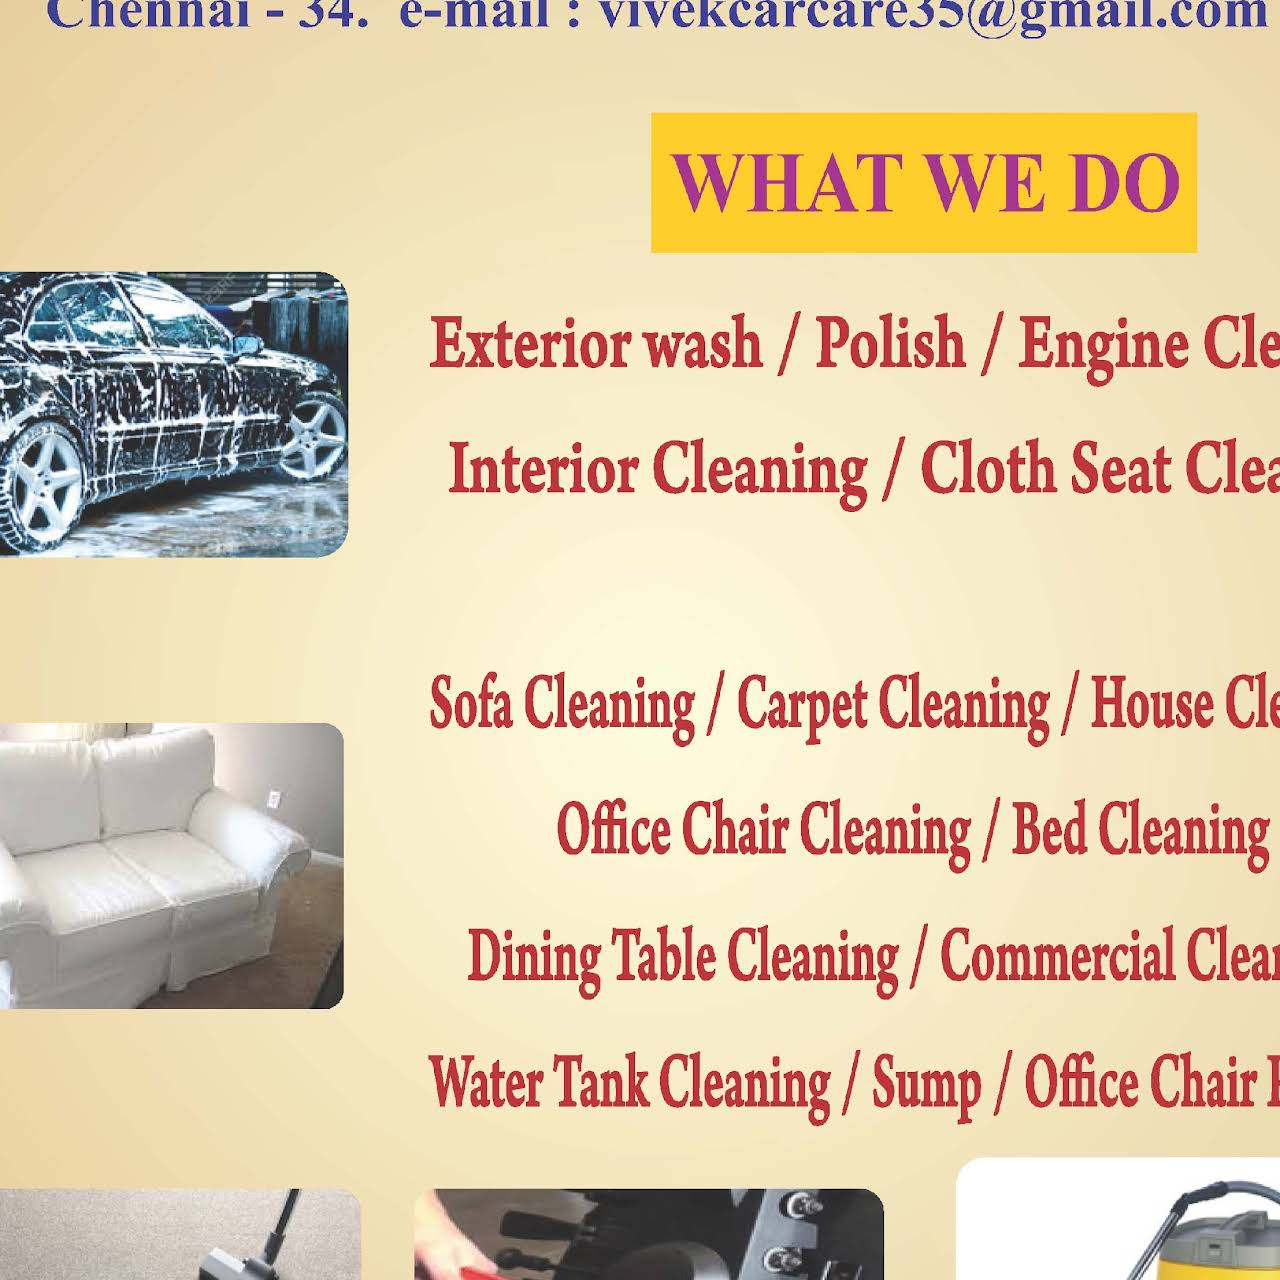 sofa cleaning services in chennai armen living barrister green vivekcarcare multi service cleaners